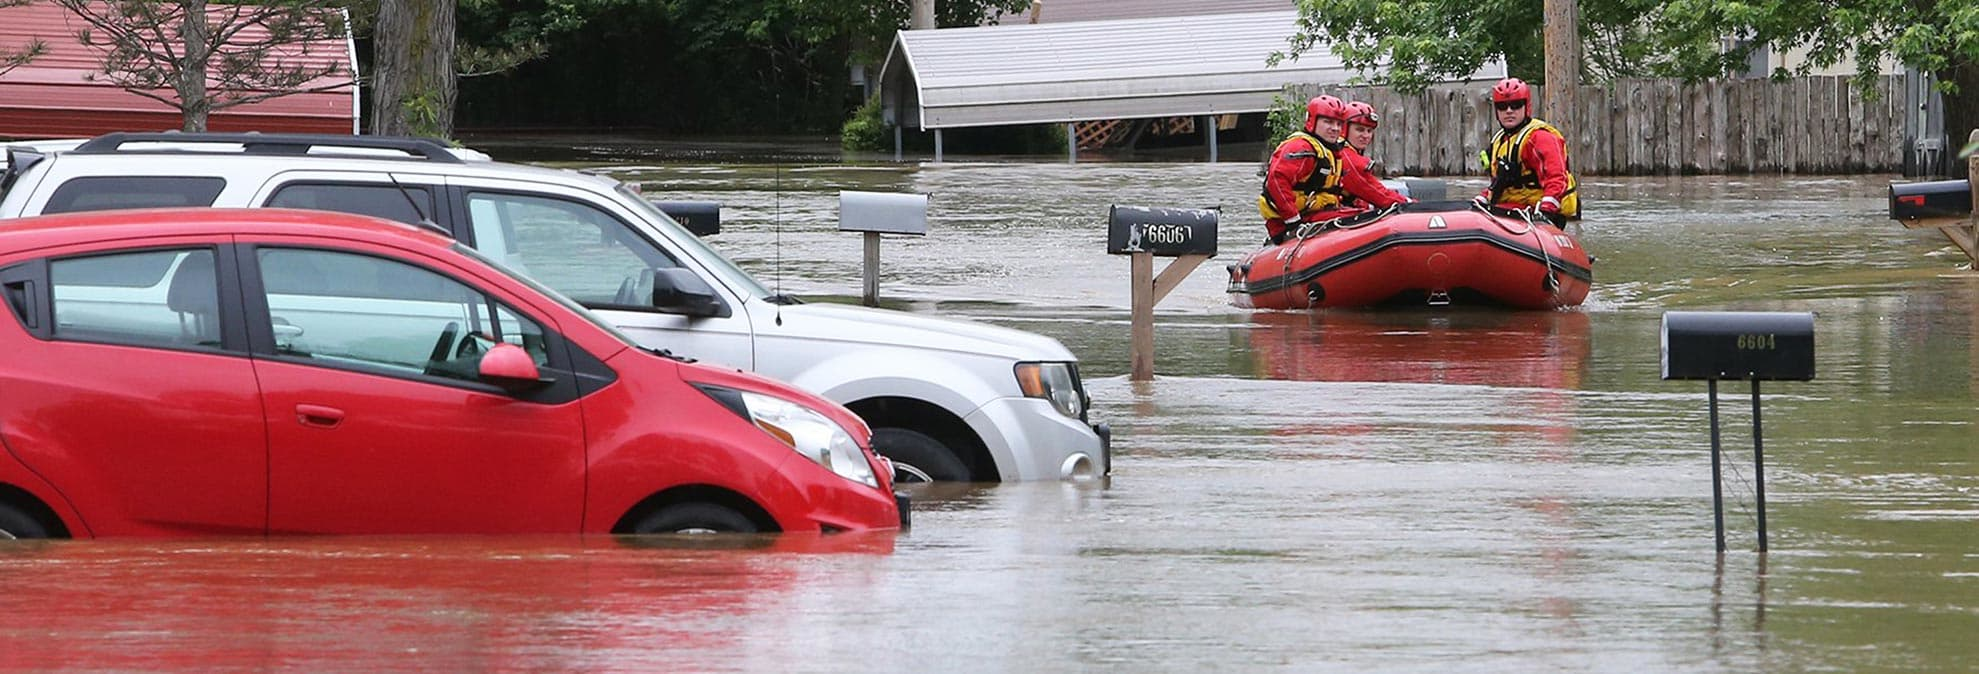 Baby cribs reviews consumer reports - Why You Should Consider Buying Flood Insurance Consumer Reports